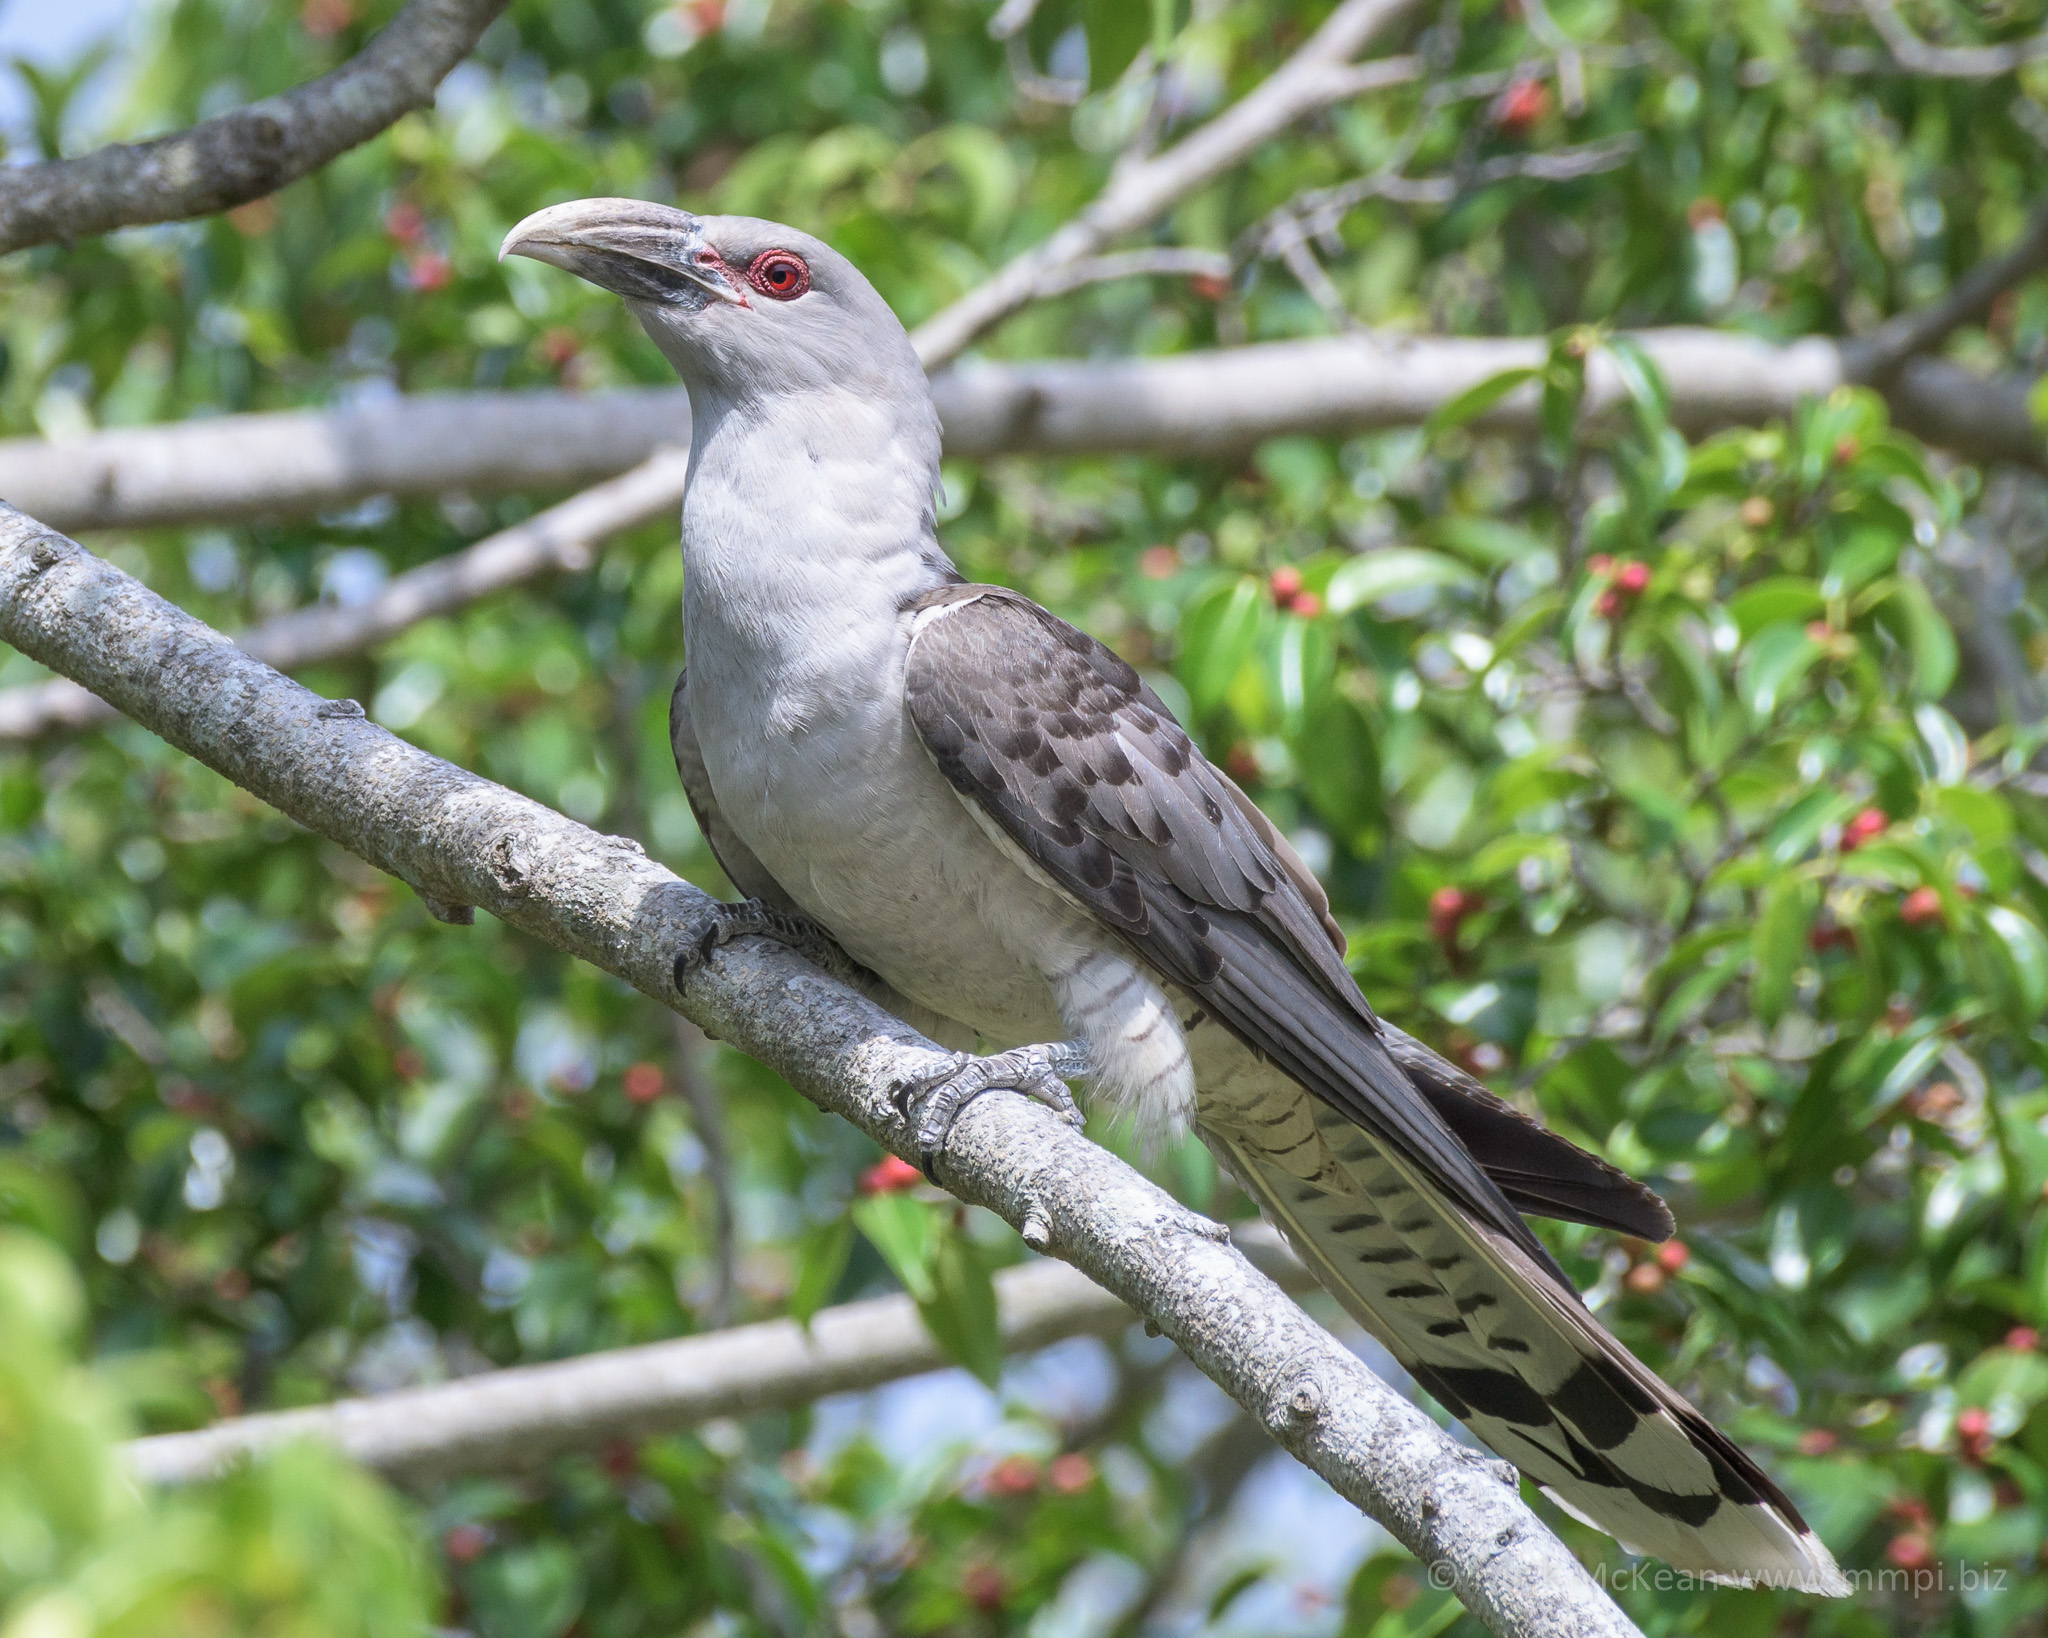 The Brute – Channel-billed Cuckoo